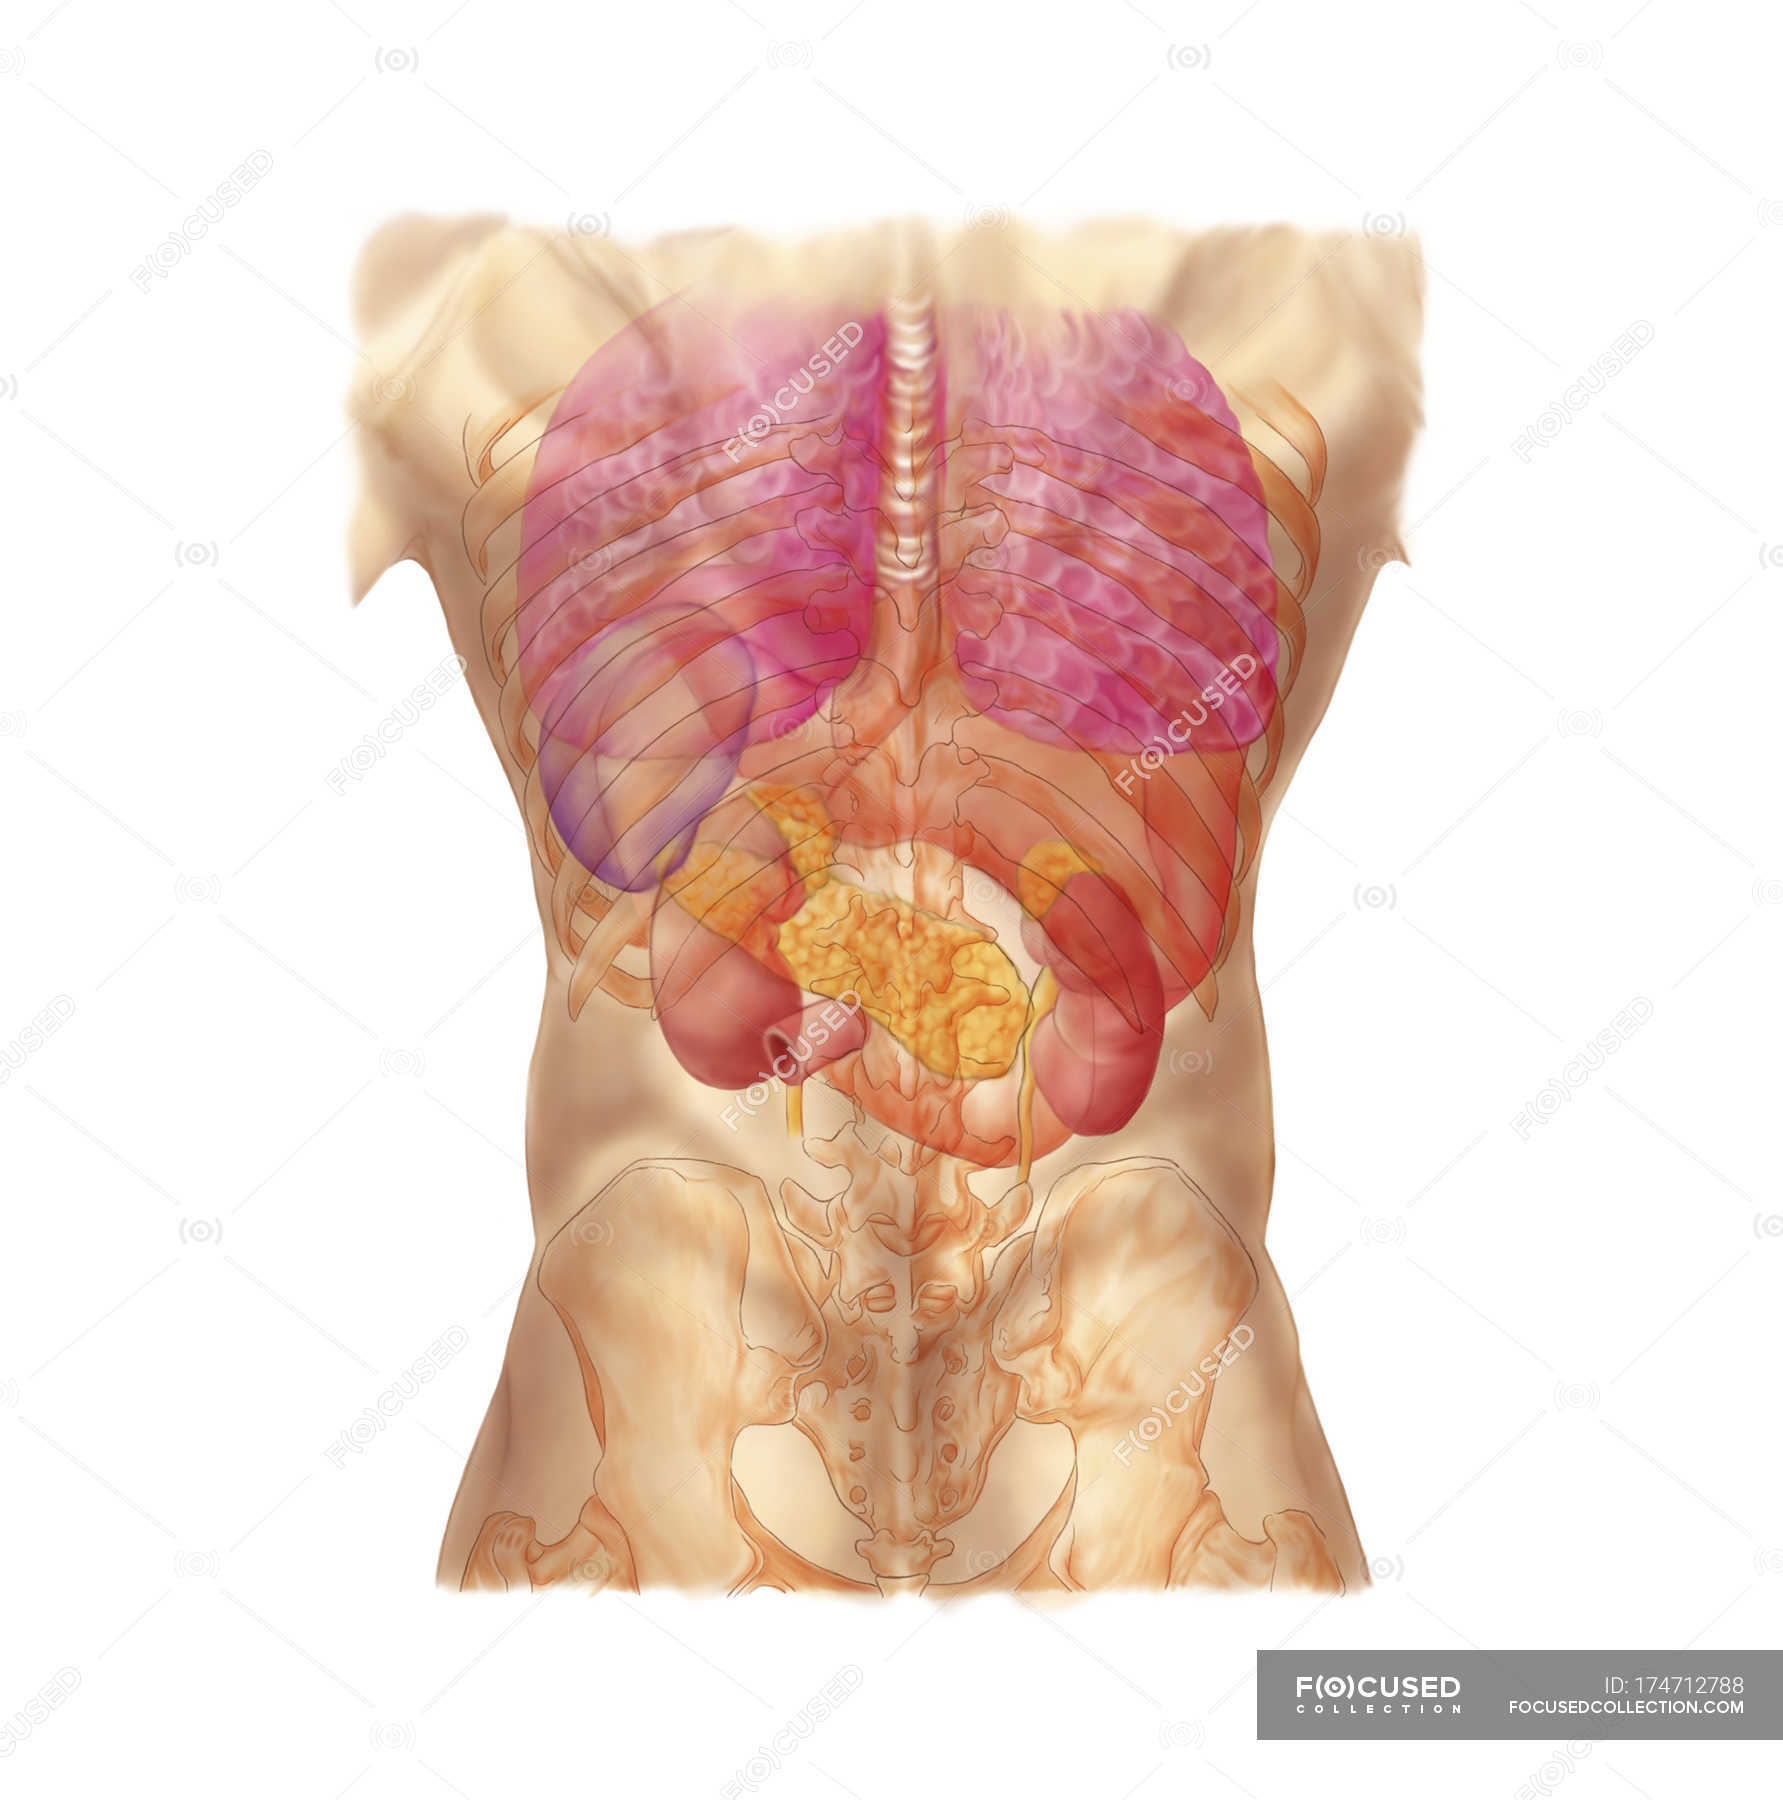 Abdominal quadrants with internal organs and rib cage stock photo abdominal quadrants with internal organs and rib cage stock photo 174712788 ccuart Choice Image